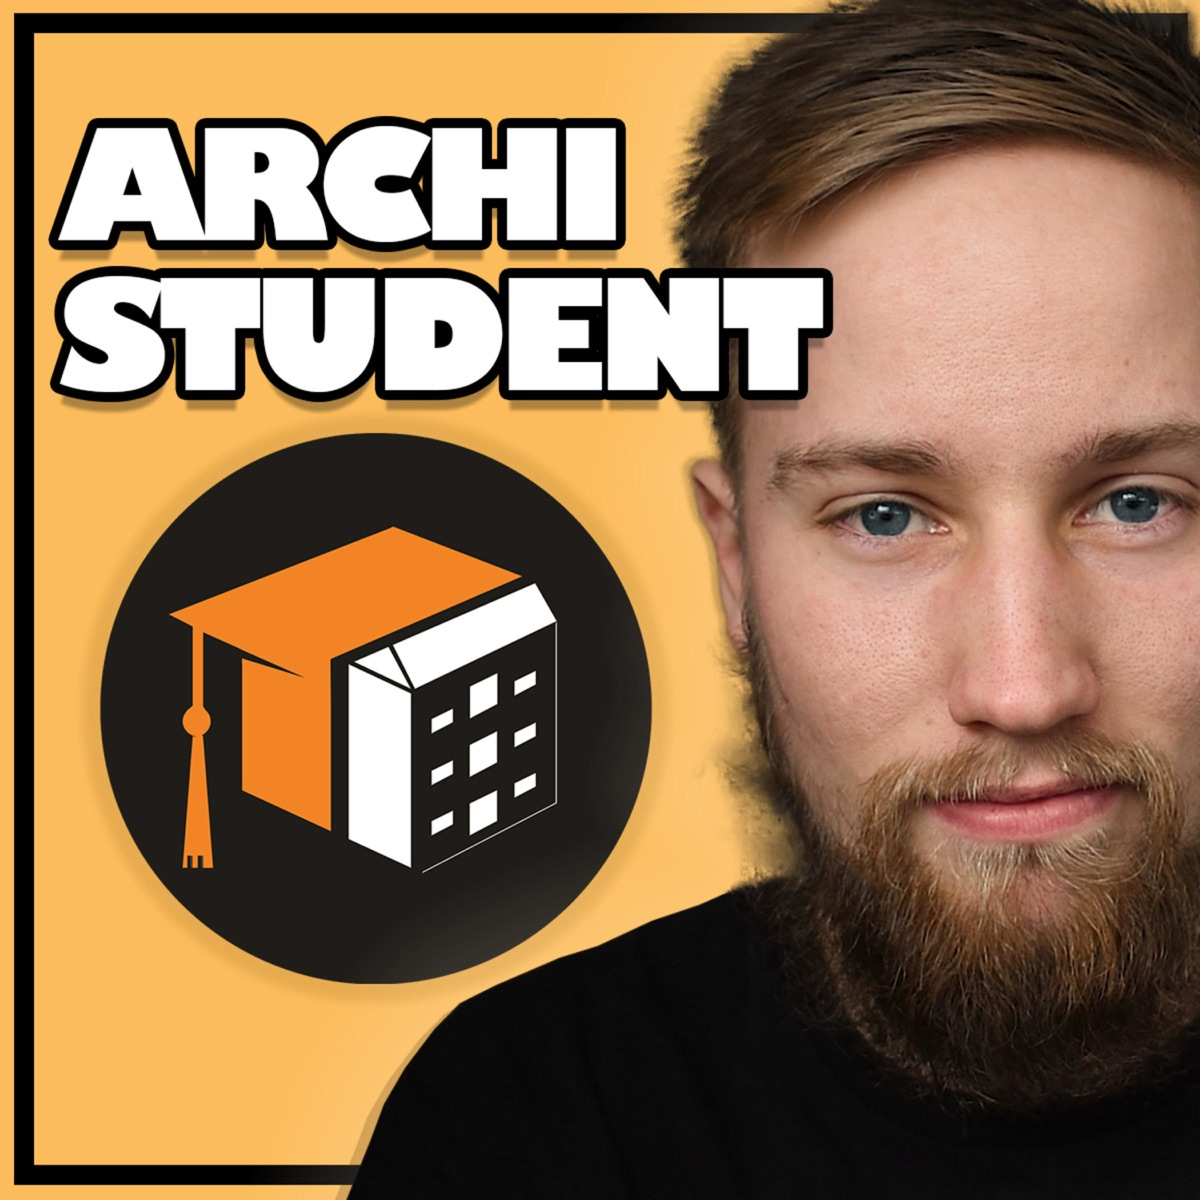 The Successful Archi Student's Podcast